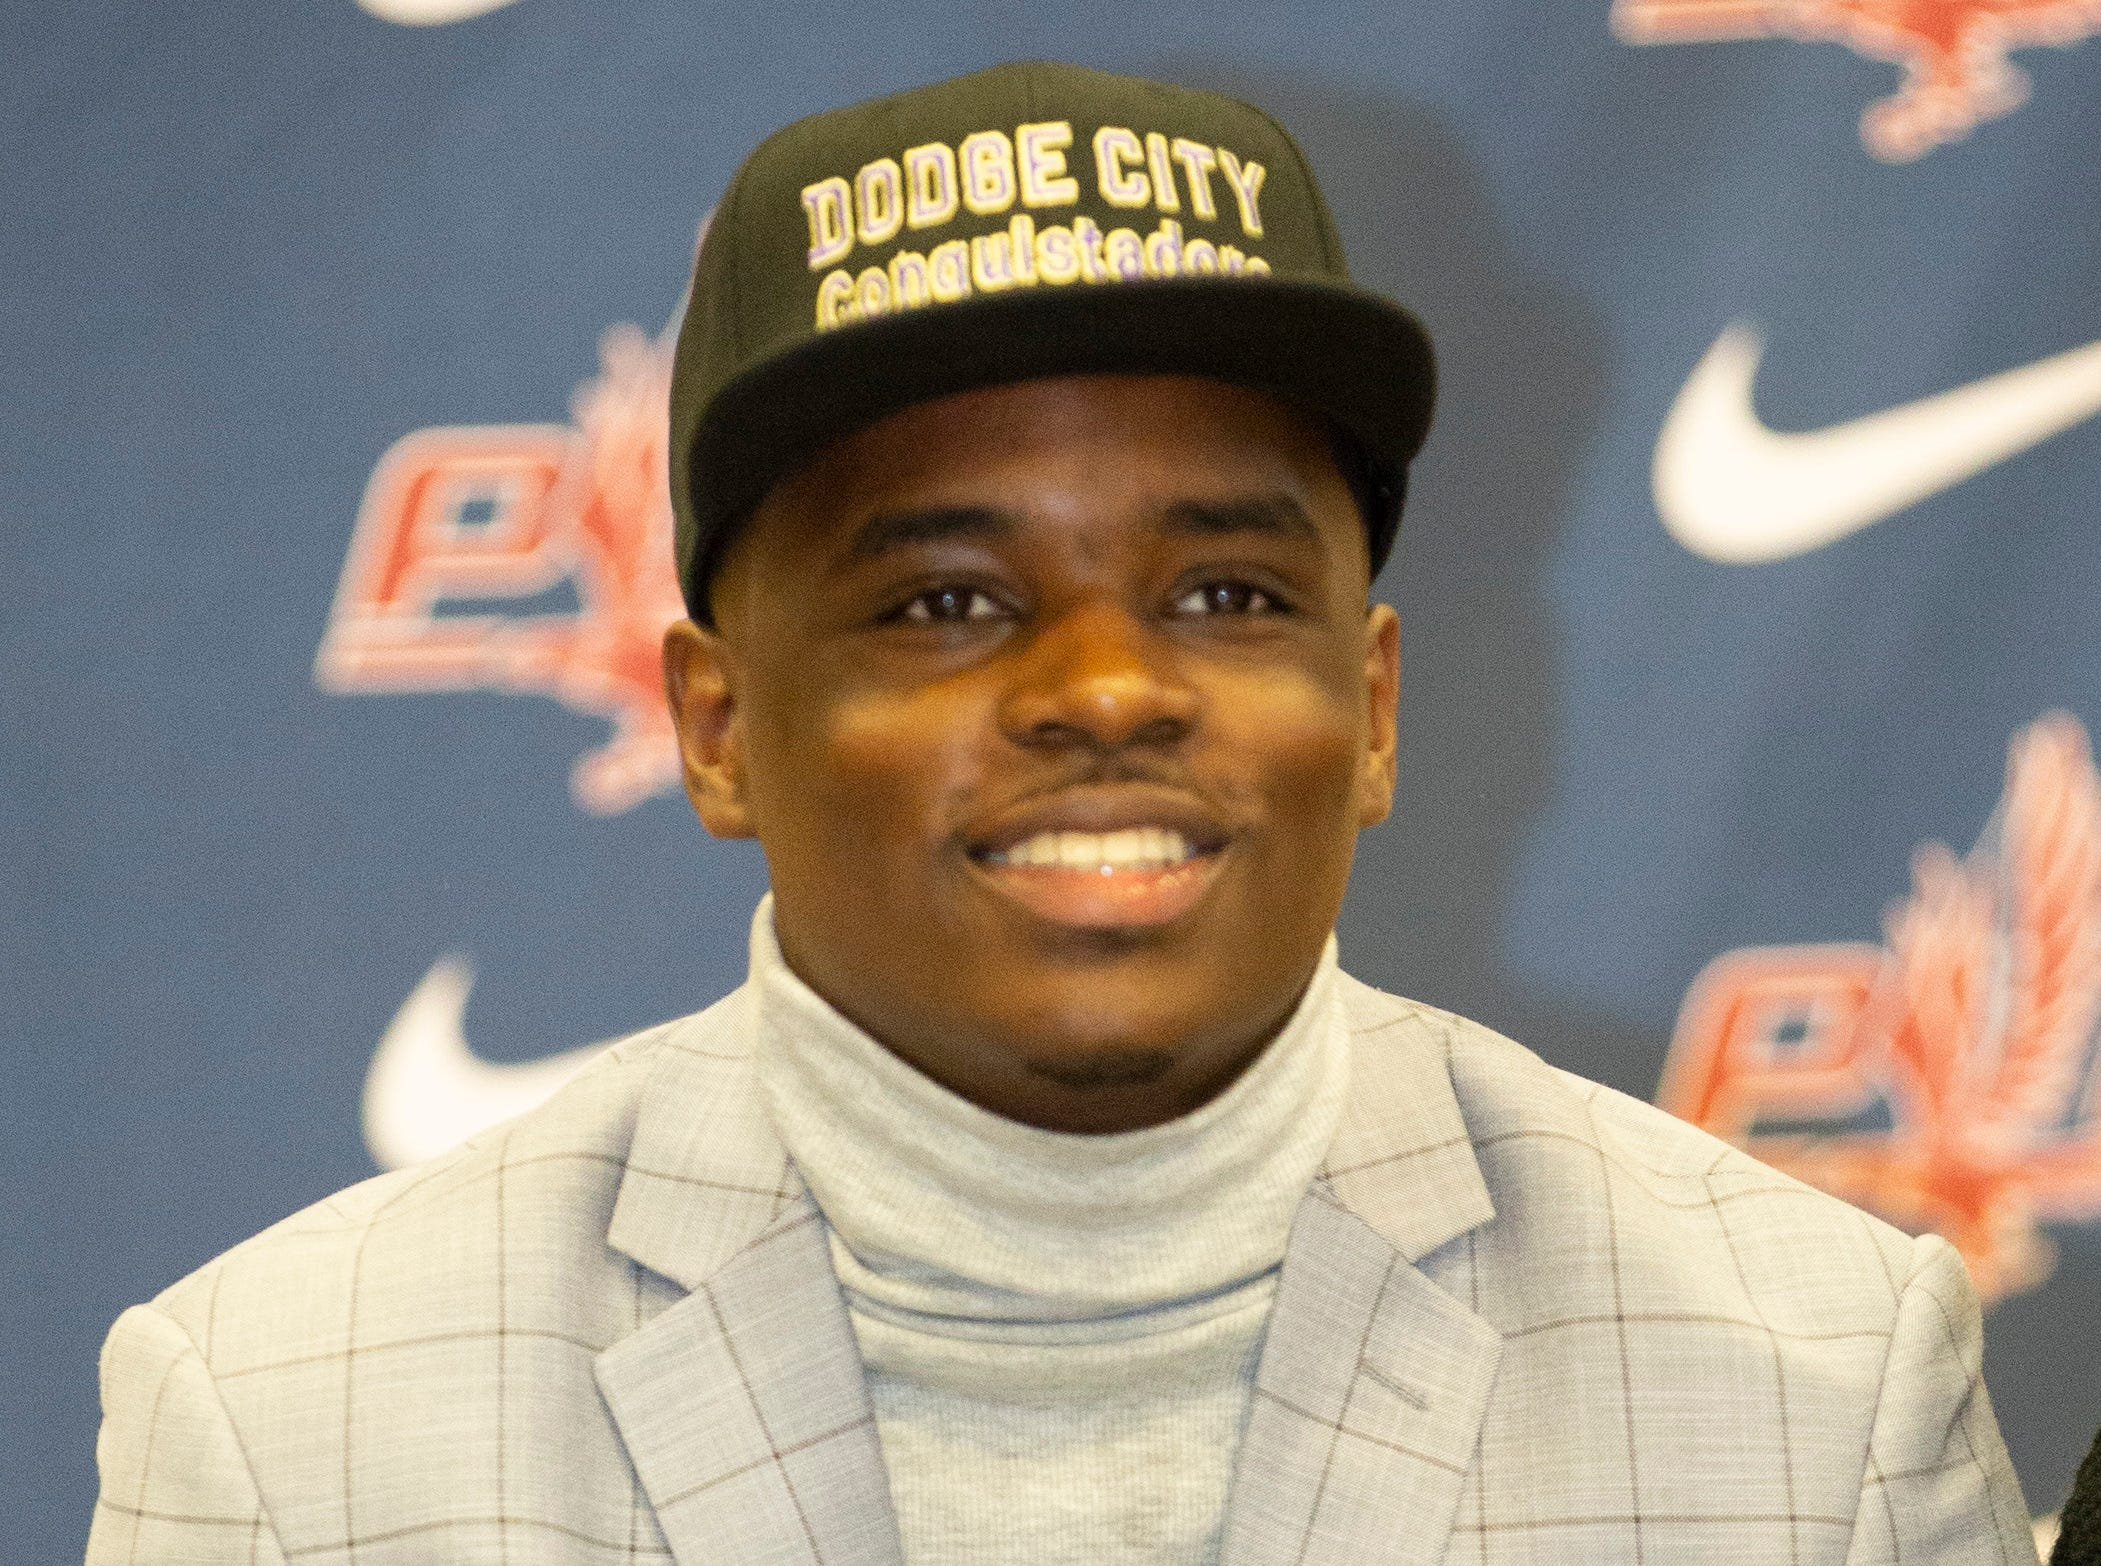 Steven Thomas, a football player at Park Crossing, signed with Dodge City Community College.